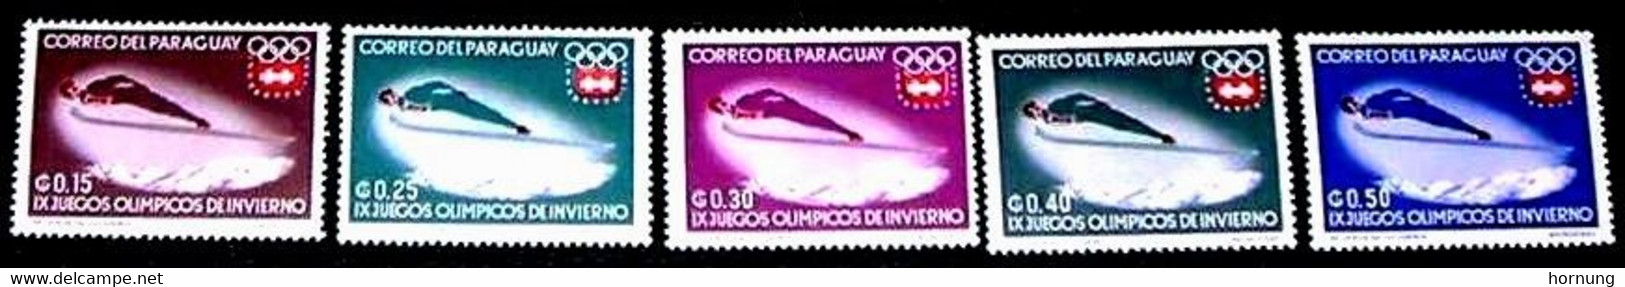 Paraguay,1964,  IX  Olympic Games In Insbruck 1964.MNH. Michel No. 1294-1253 - Paraguay